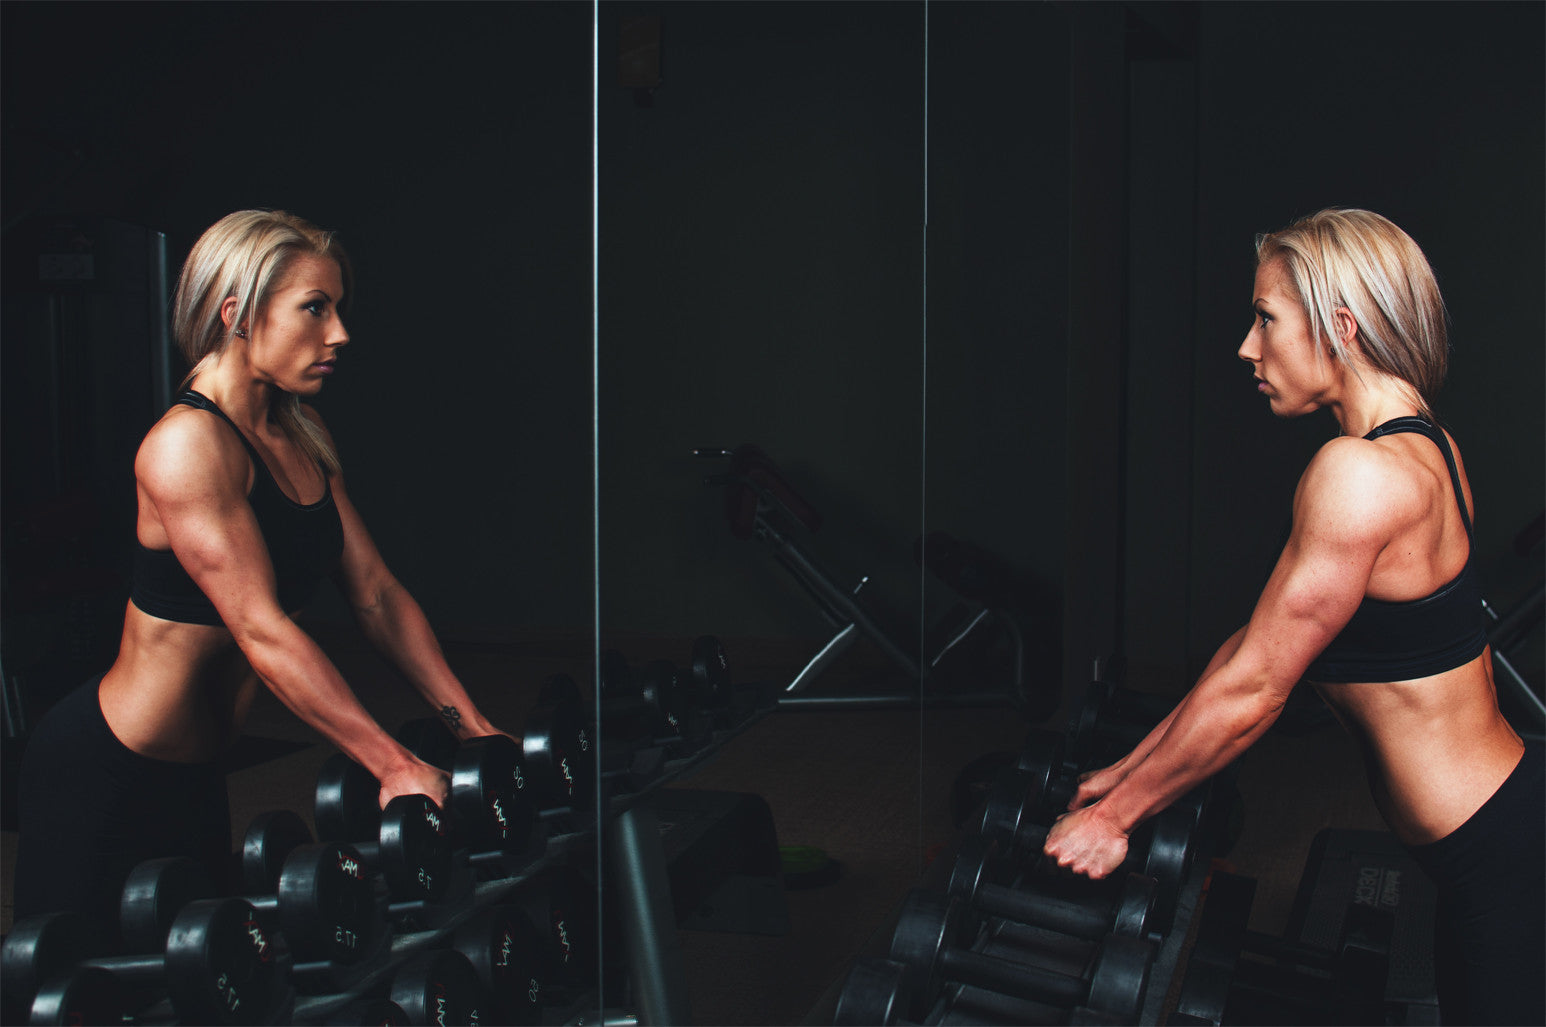 Strength Training and women - Misconceptions